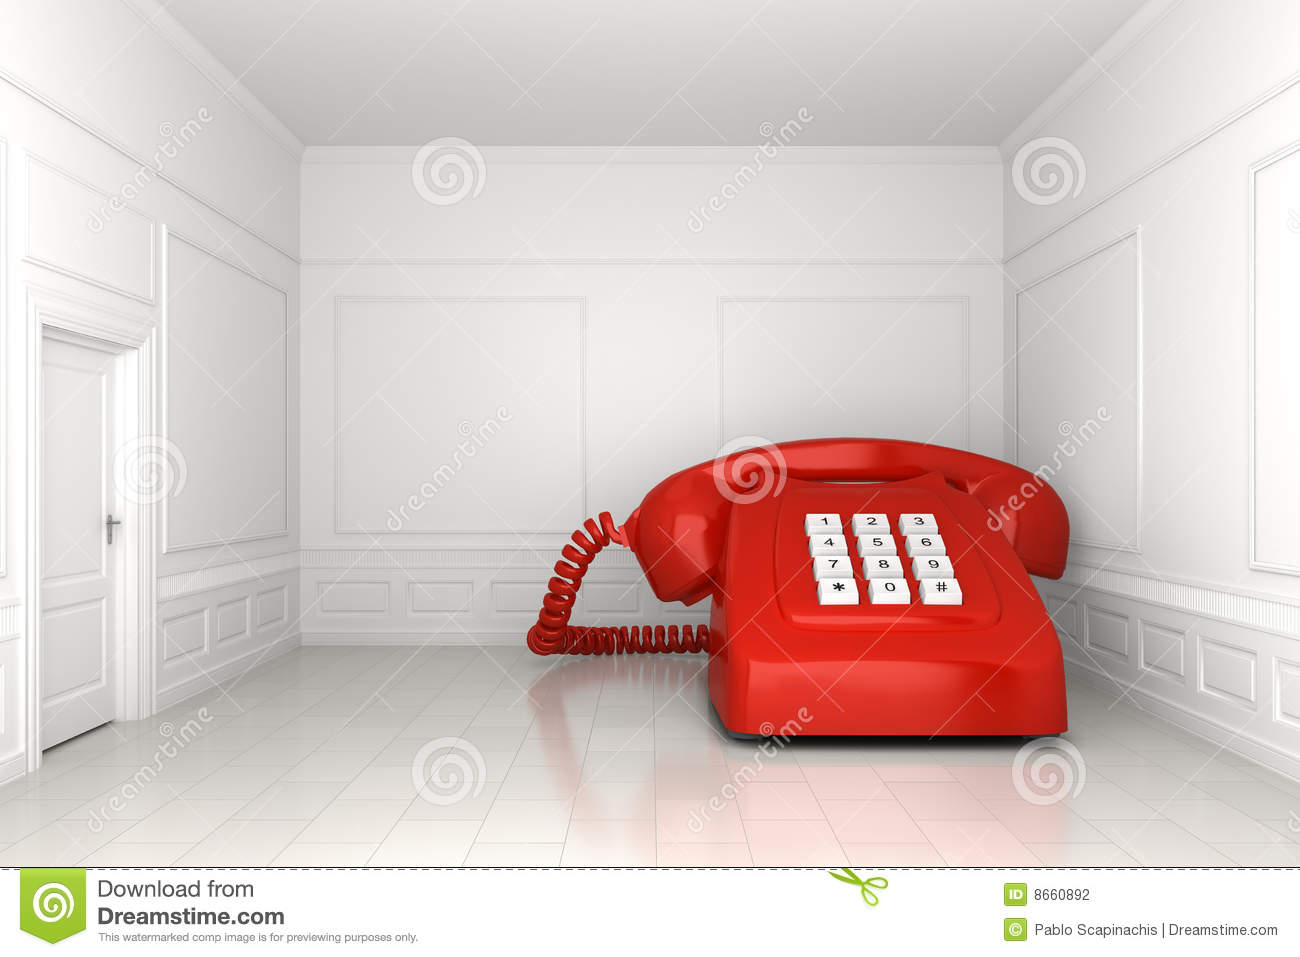 big red phone in white empty room stock photography - image: 8660892